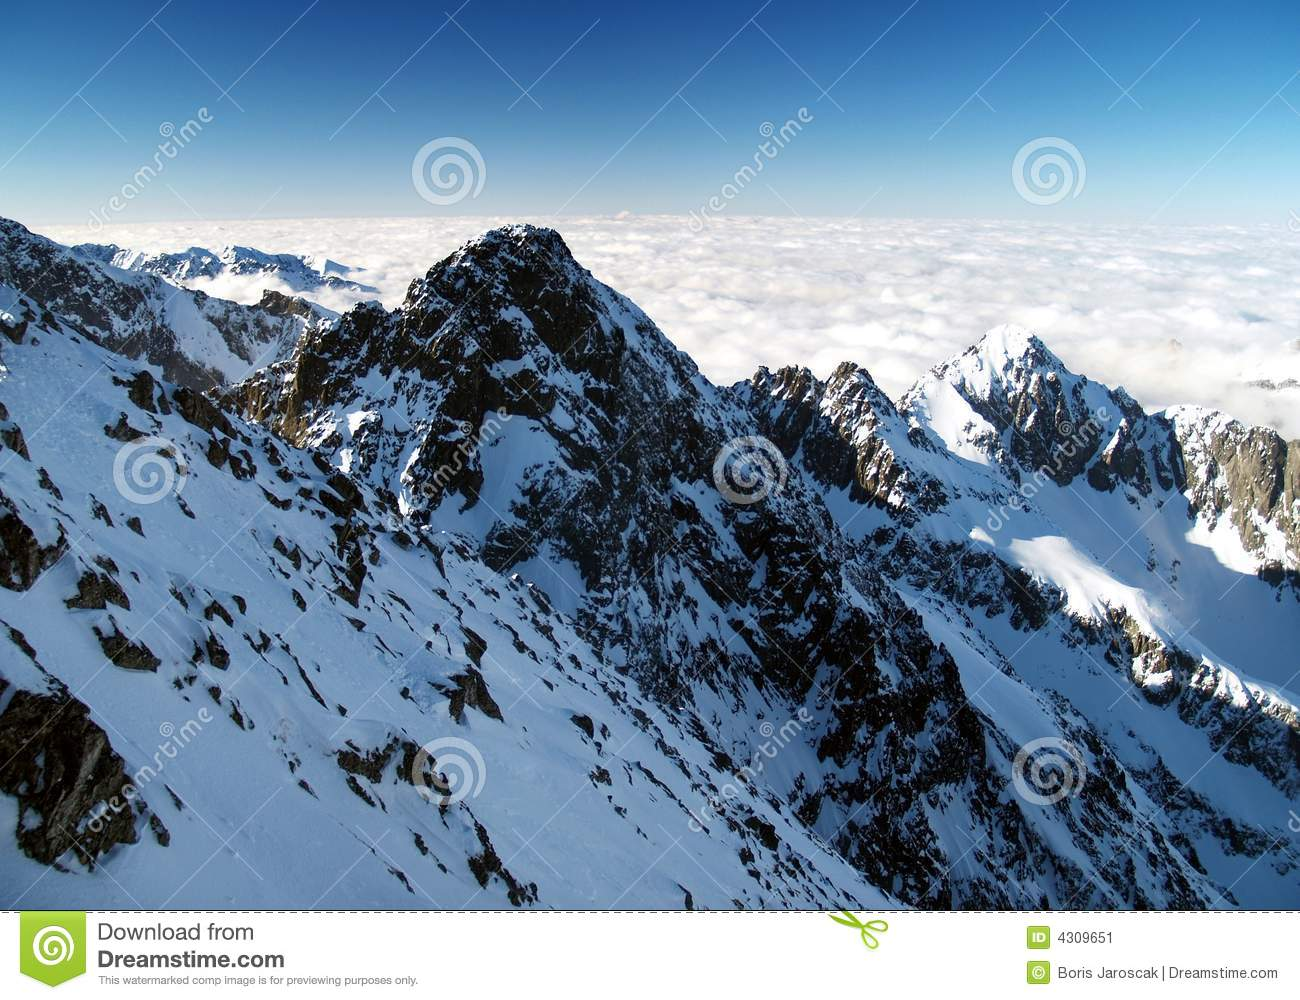 High Tatra mountains in winter